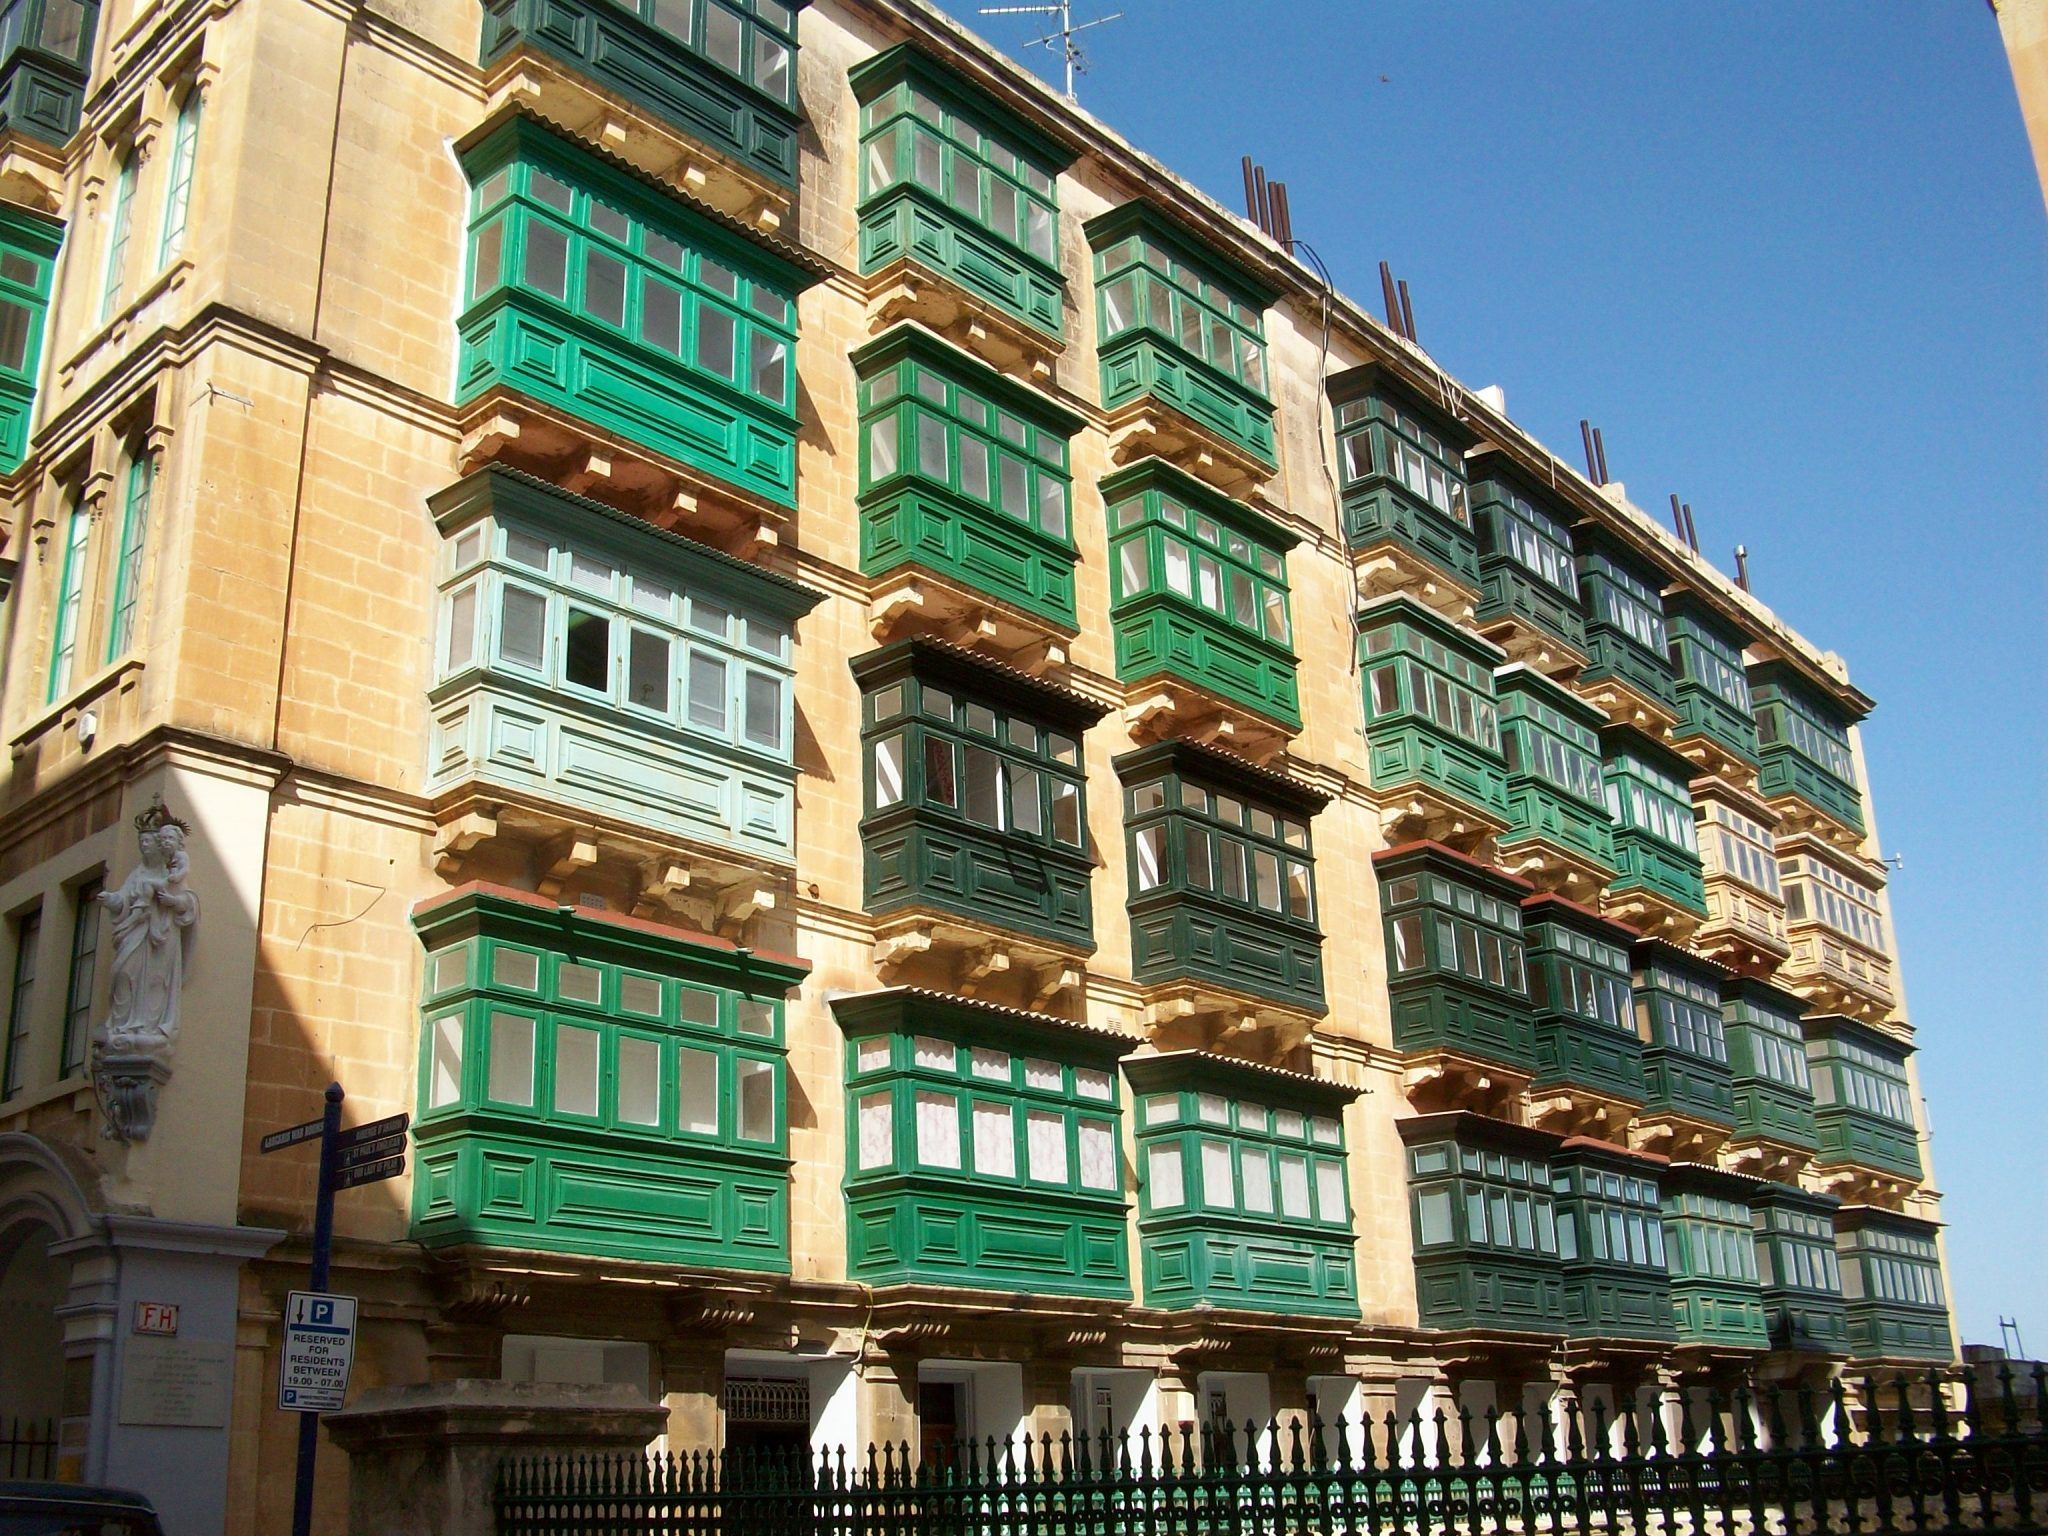 Green Apartments In Malta - Why Does It Take So Long To Refinance A Mortgage?